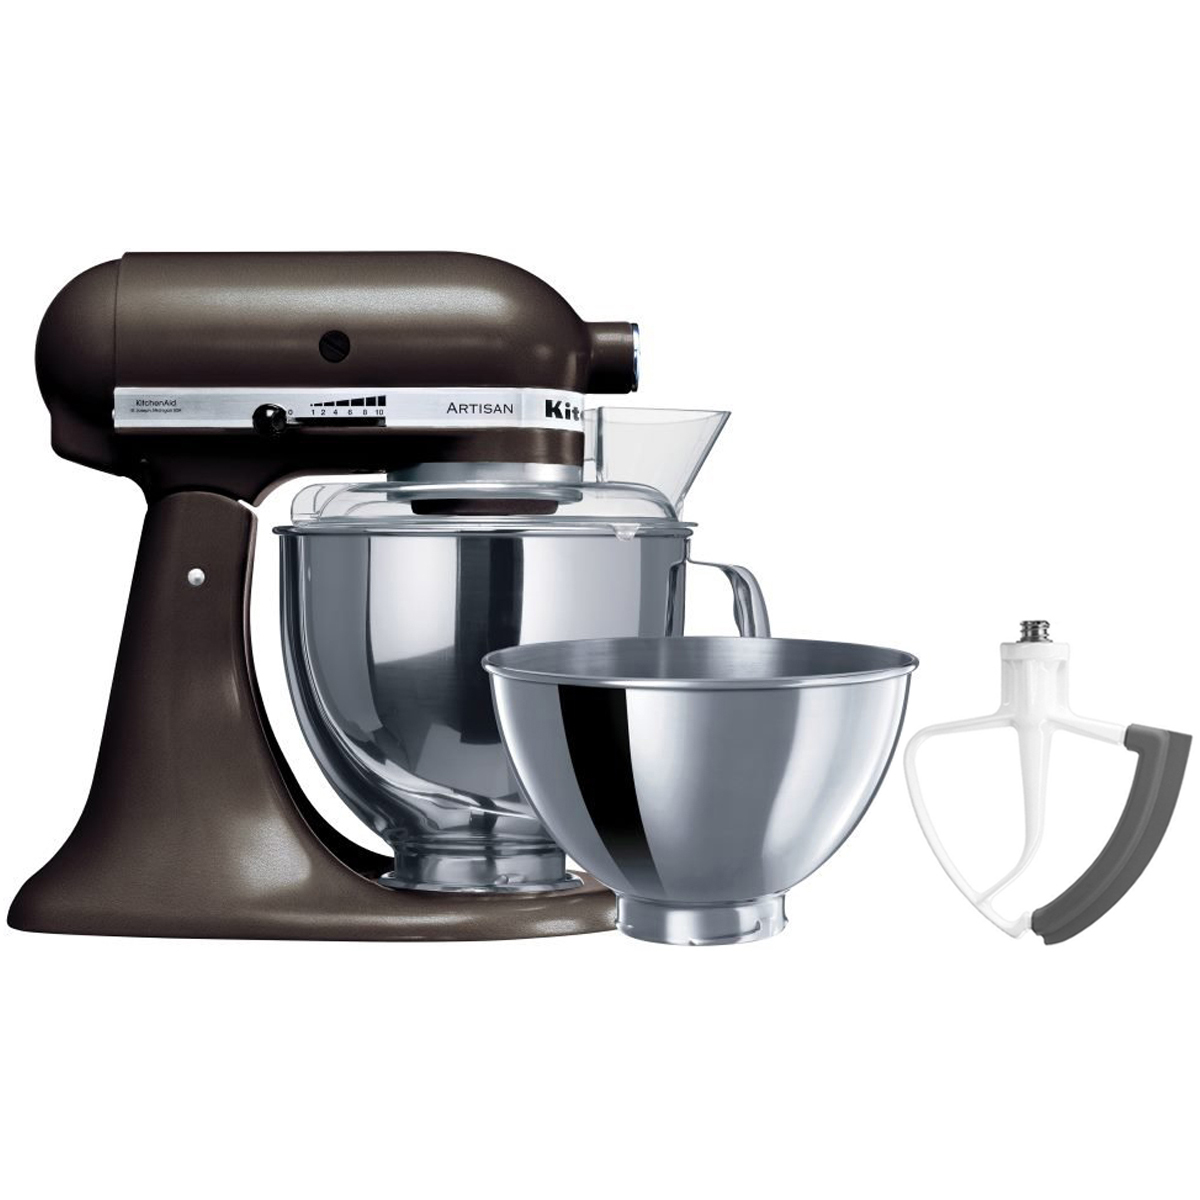 Kitchenaid 93496flexbonus ksm160 artisan stand mixer with flex edge beater home clearance Kitchenaid artisan replacement parts